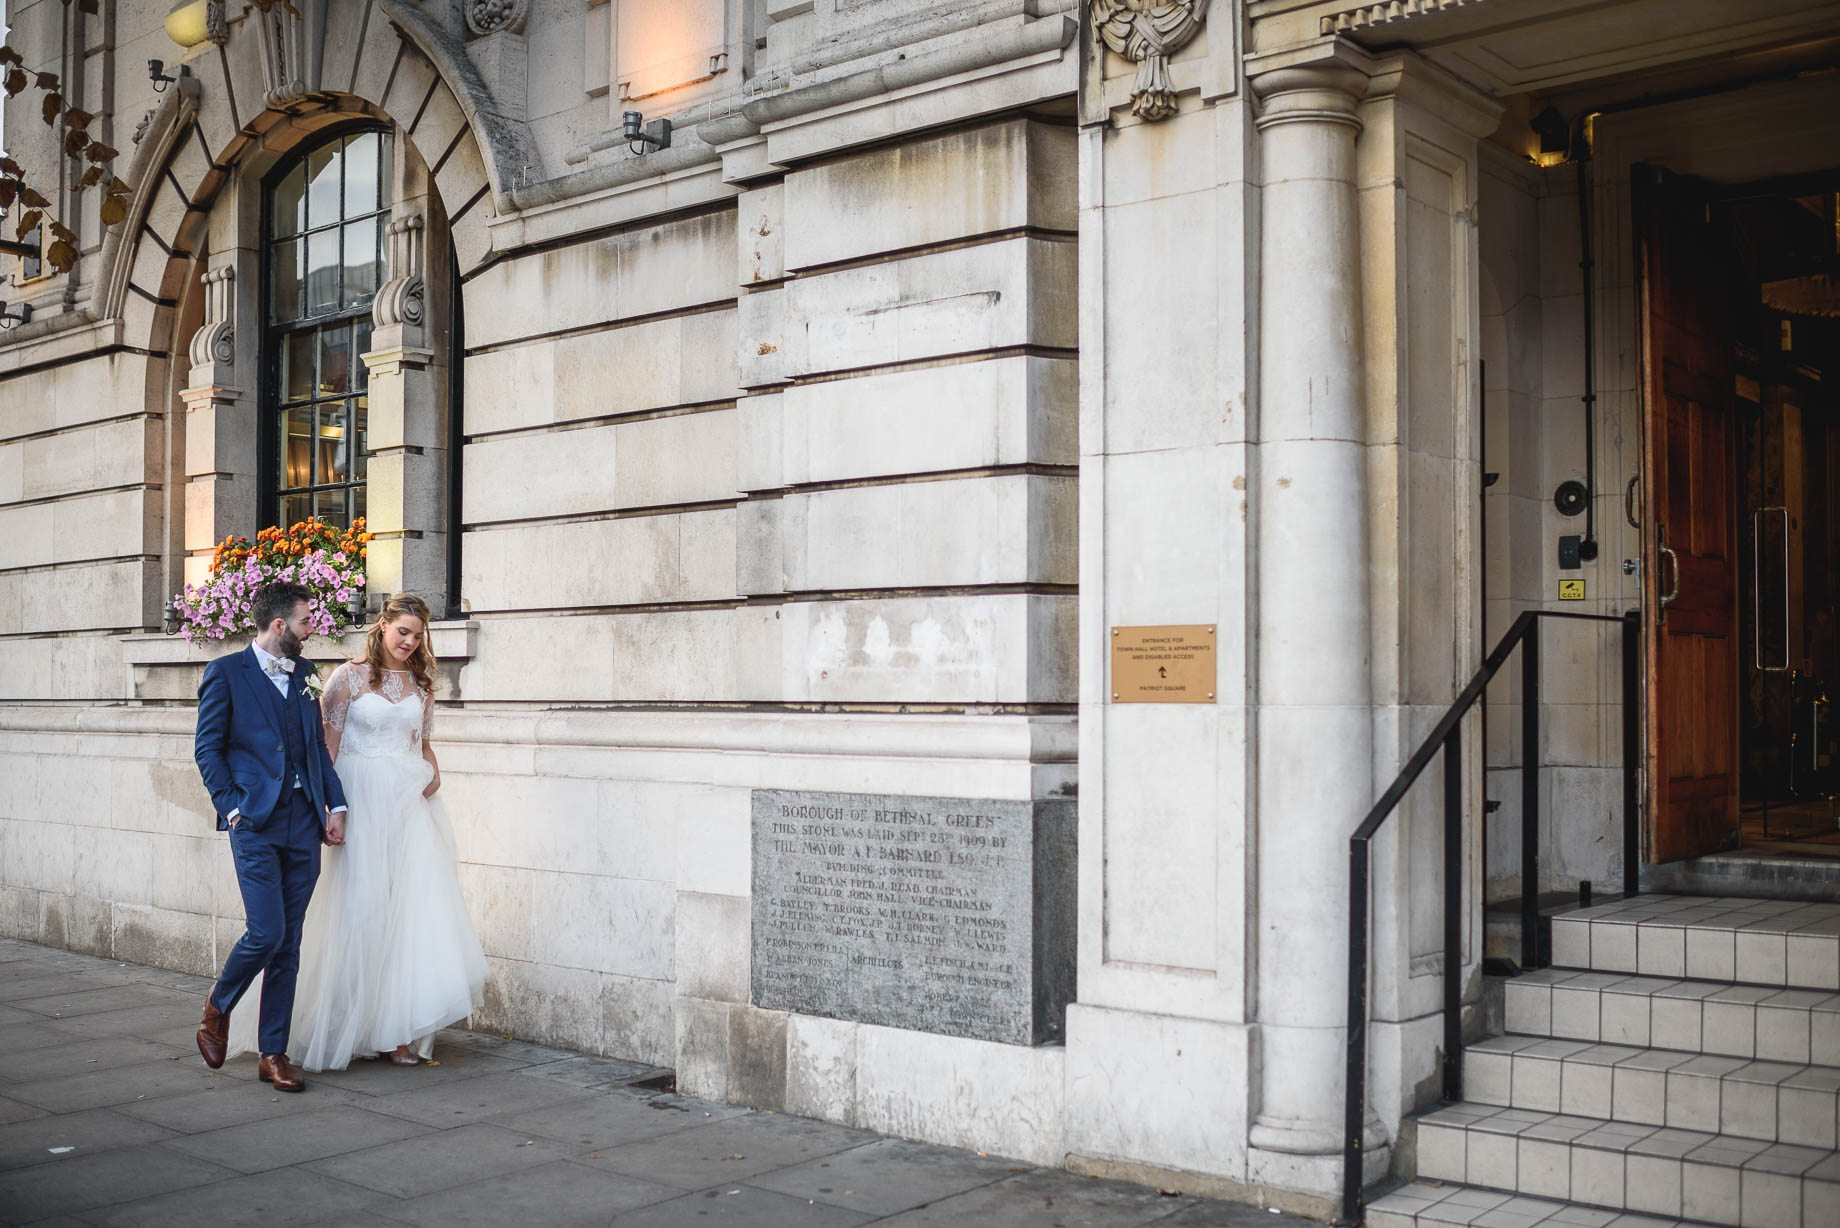 Town Hall Hotel London wedding photography